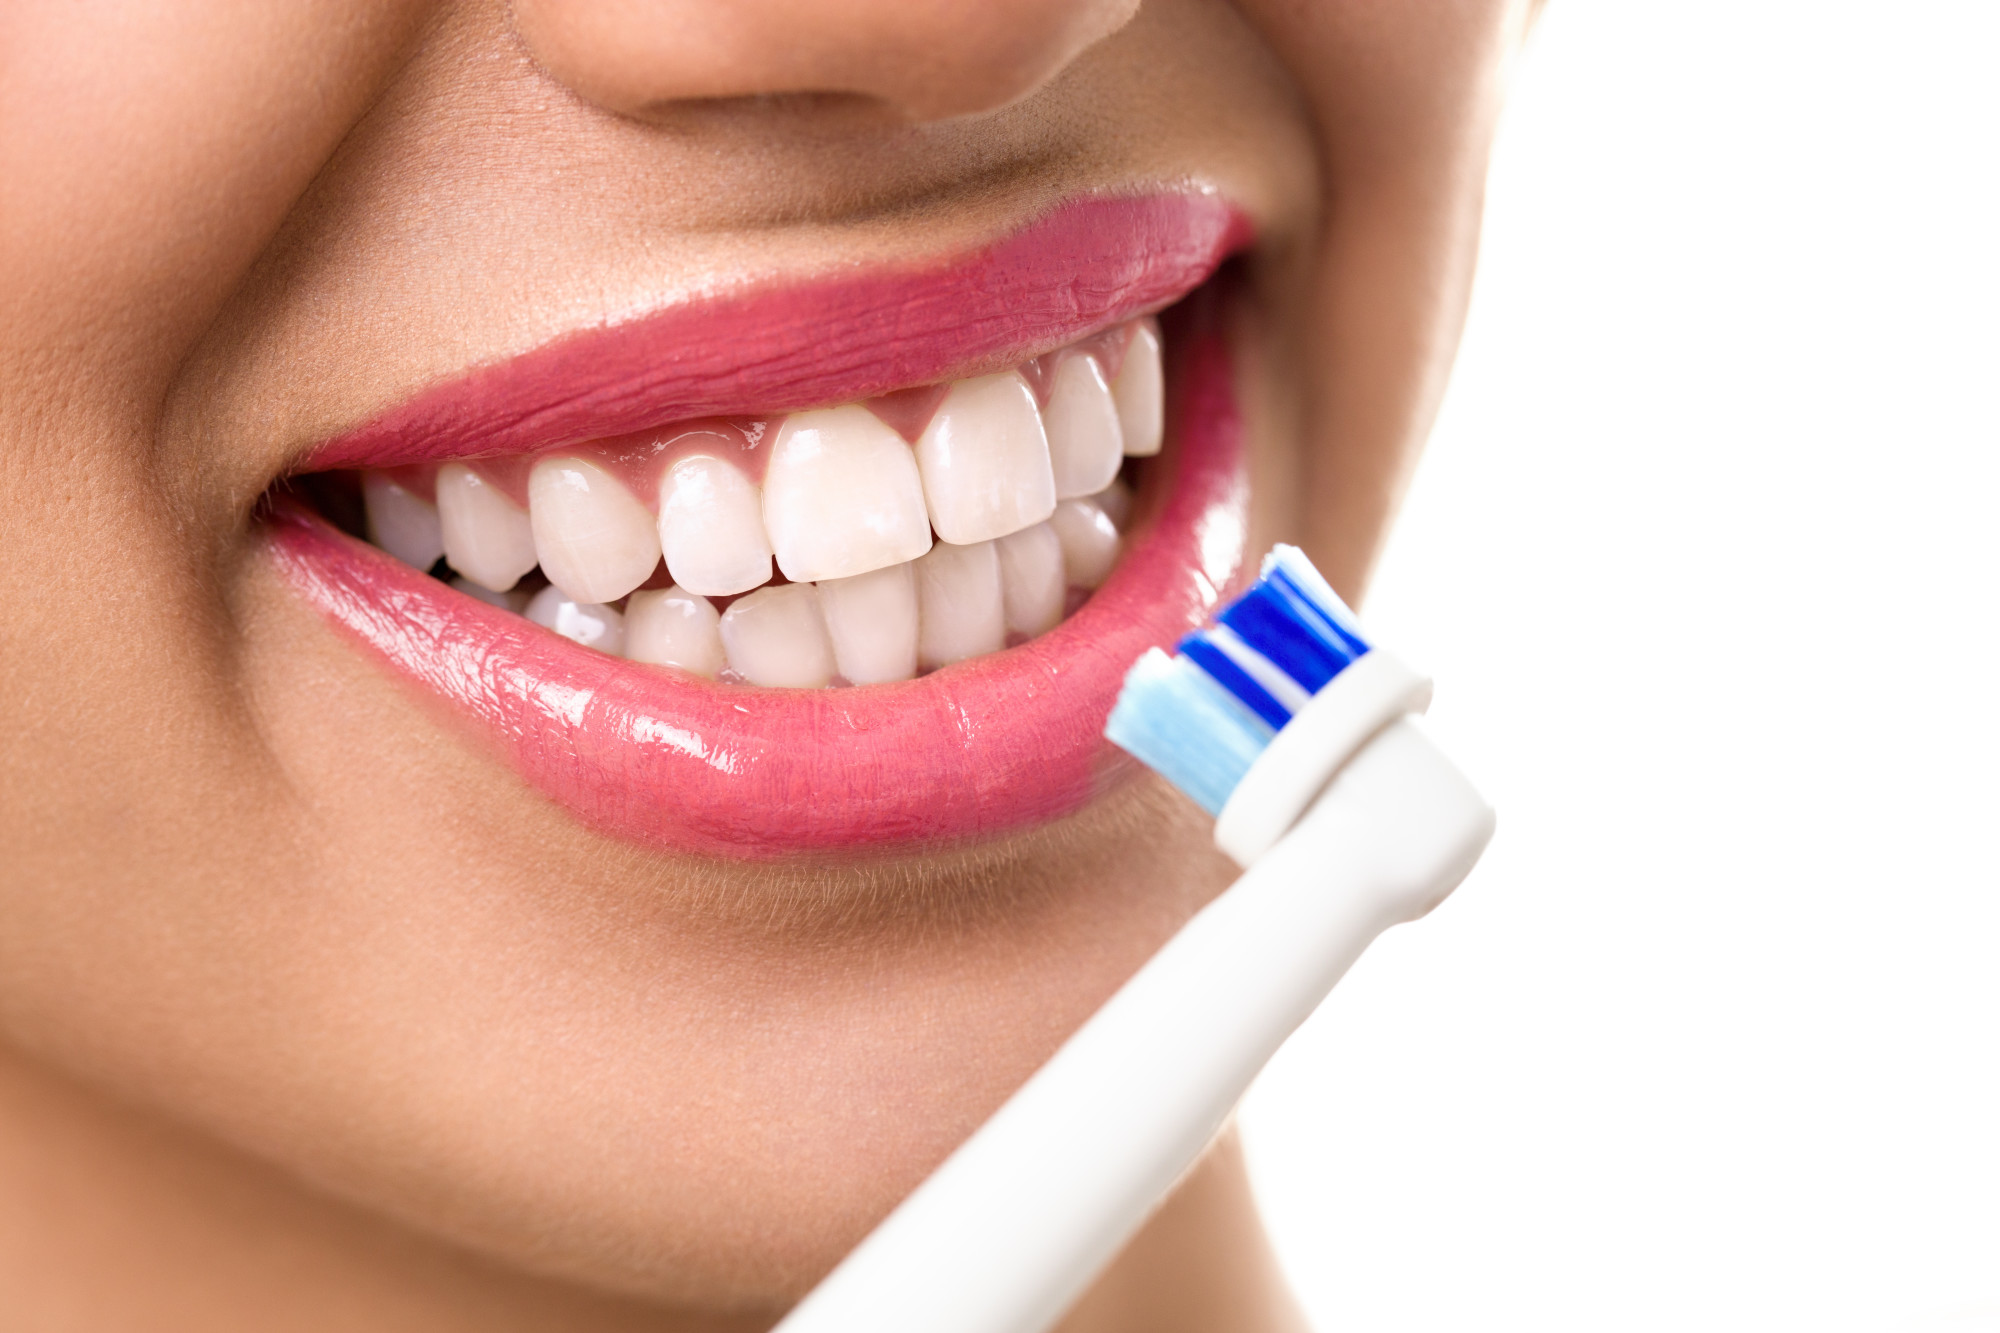 Oral Hygiene: Top 7 Mistakes You Make While Cleaning Your Teeth